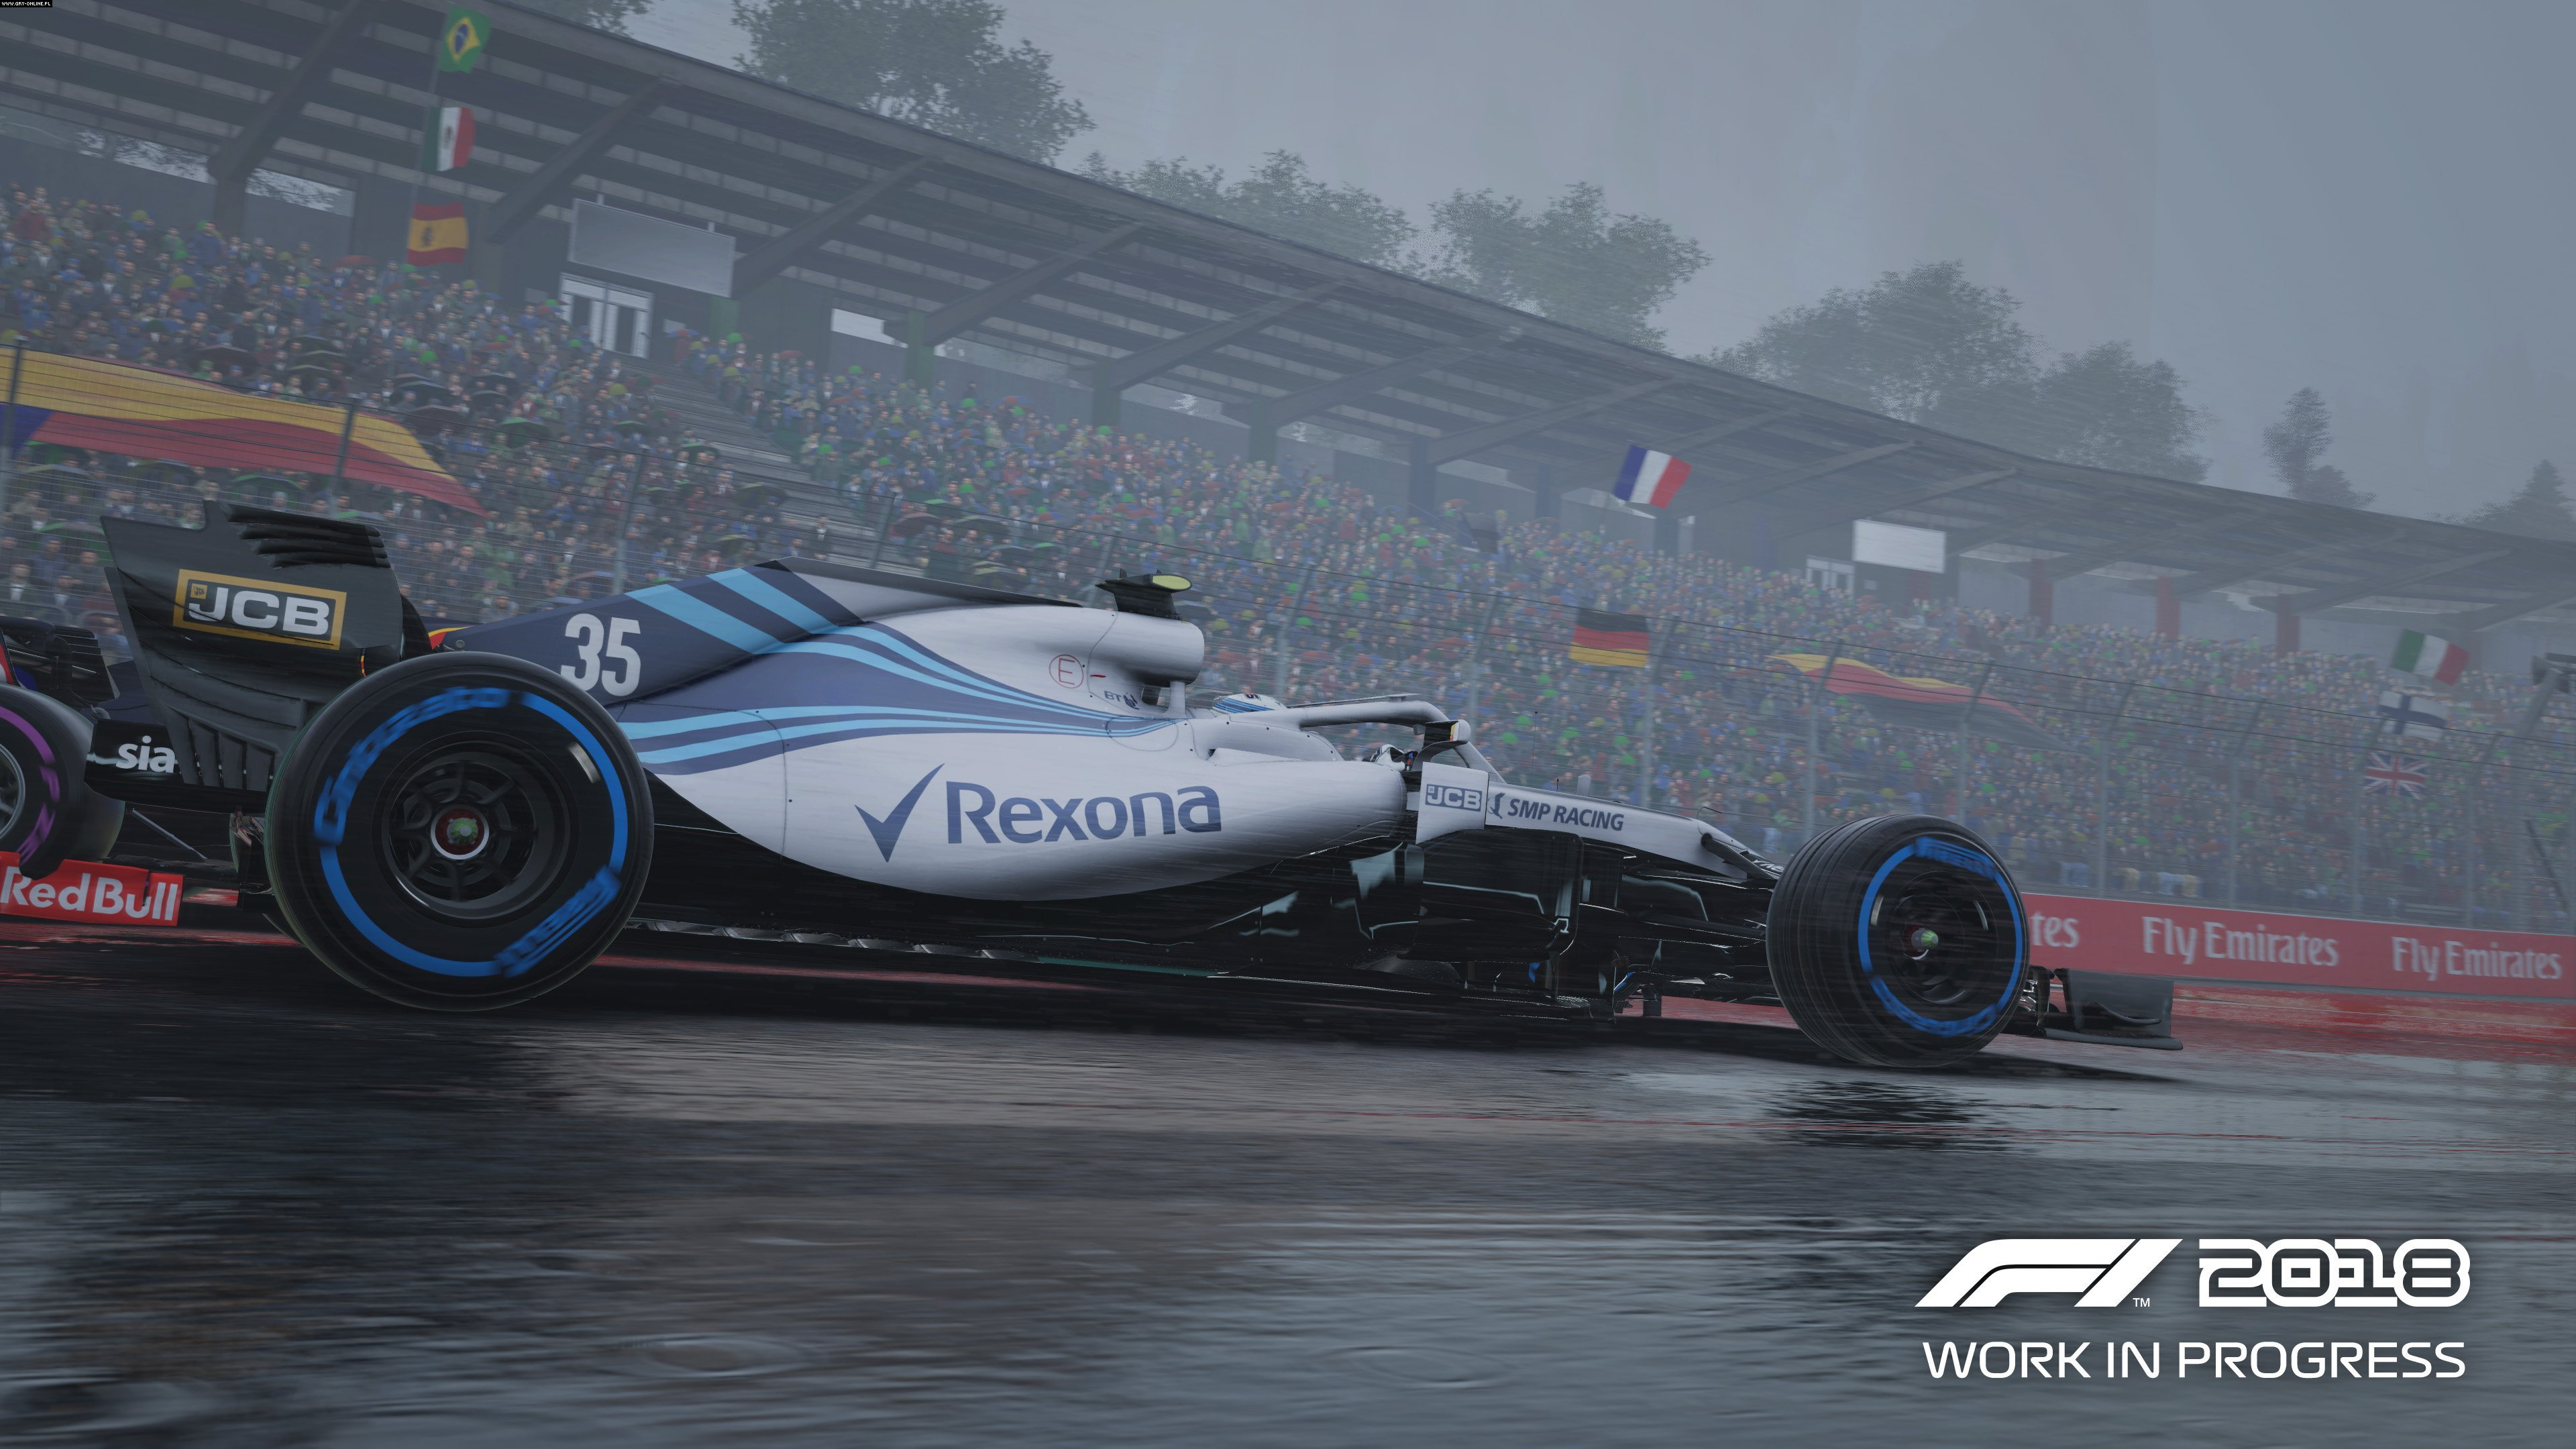 F1 2018 PC, PS4, XONE Games Image 17/38, Codemasters Software